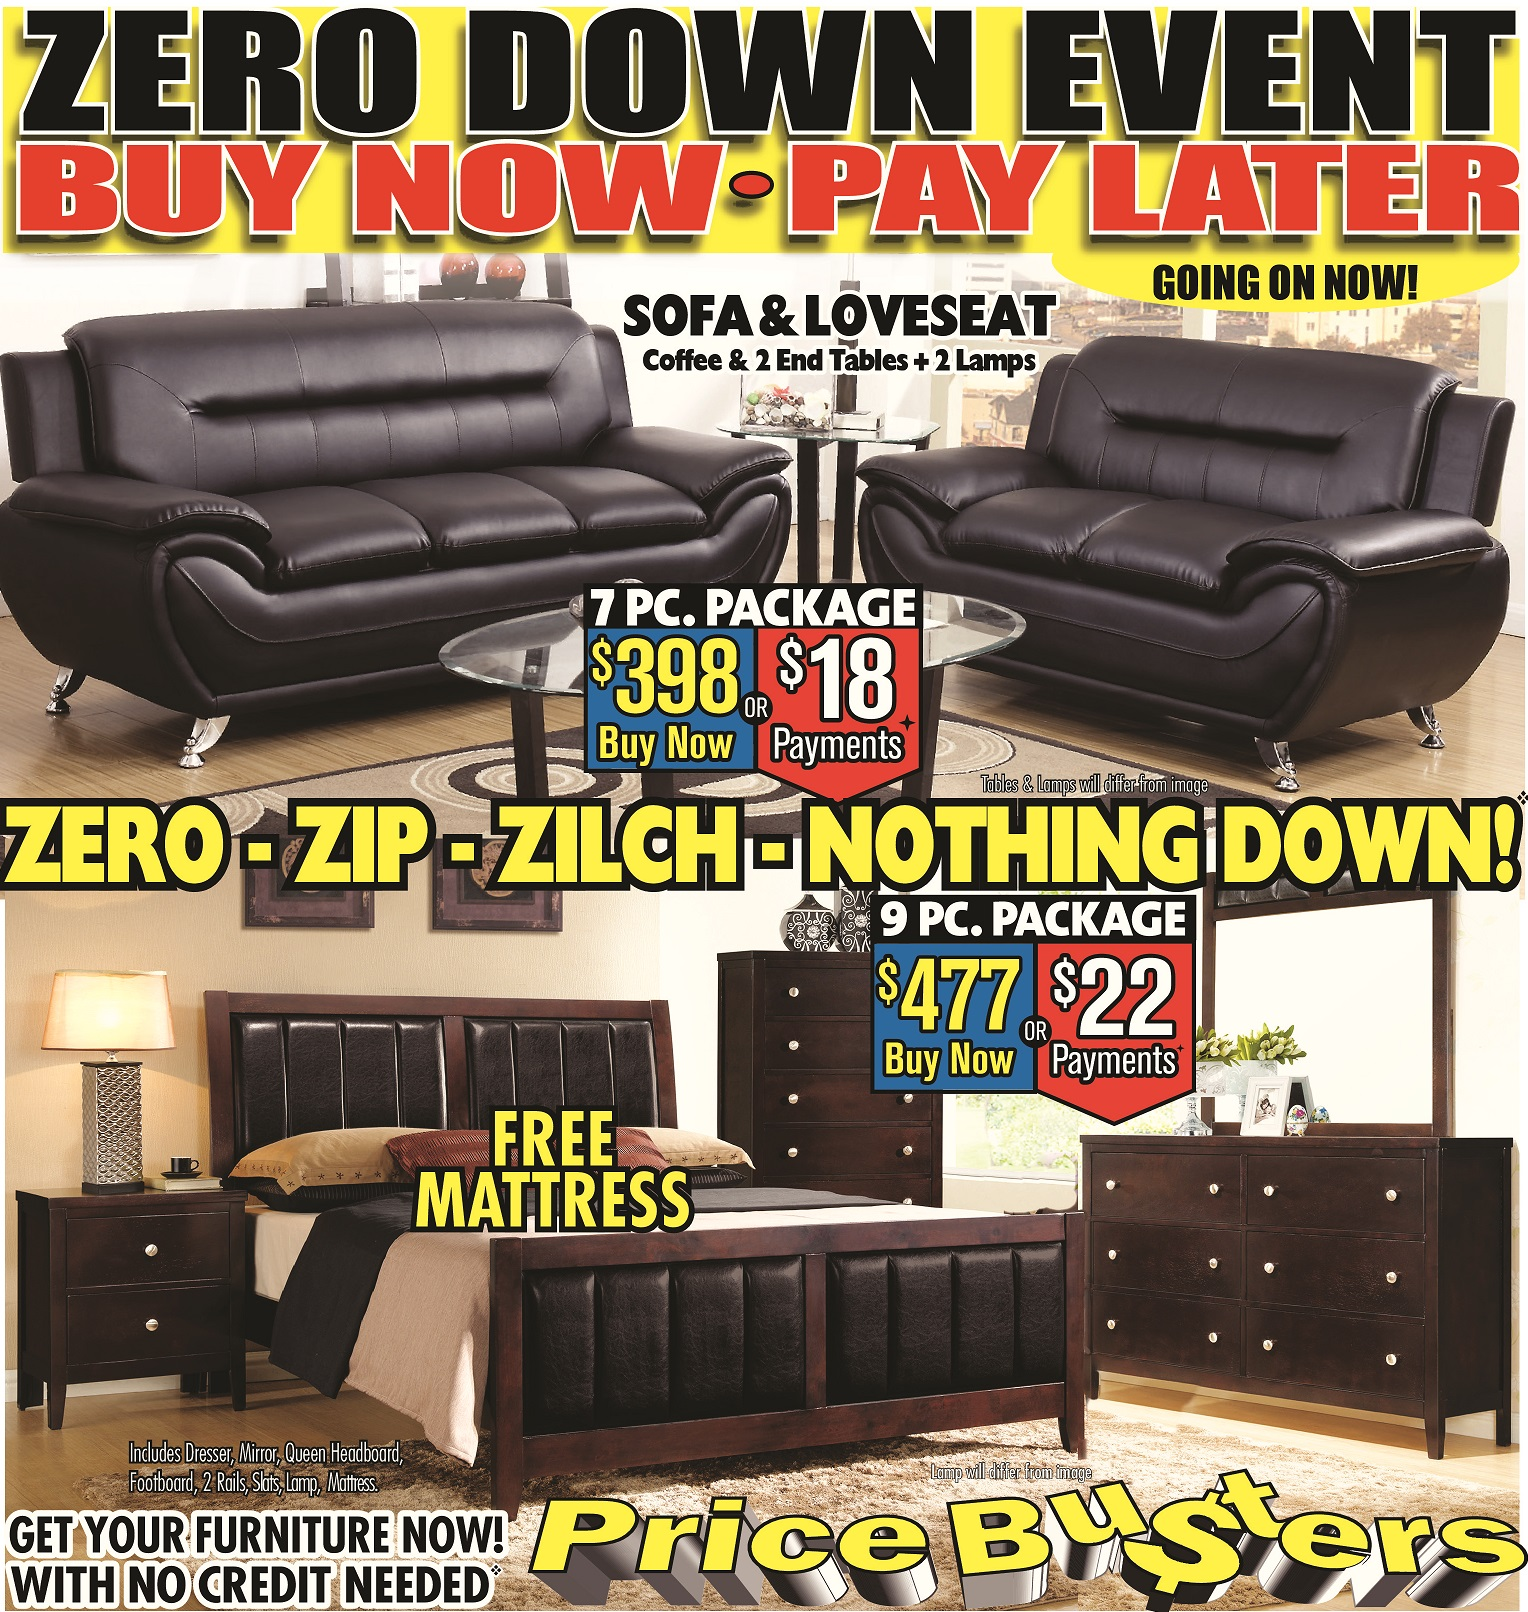 Price Busters Discount Furniture In Price Busters Discount Furniture Baltimore Md Furniture